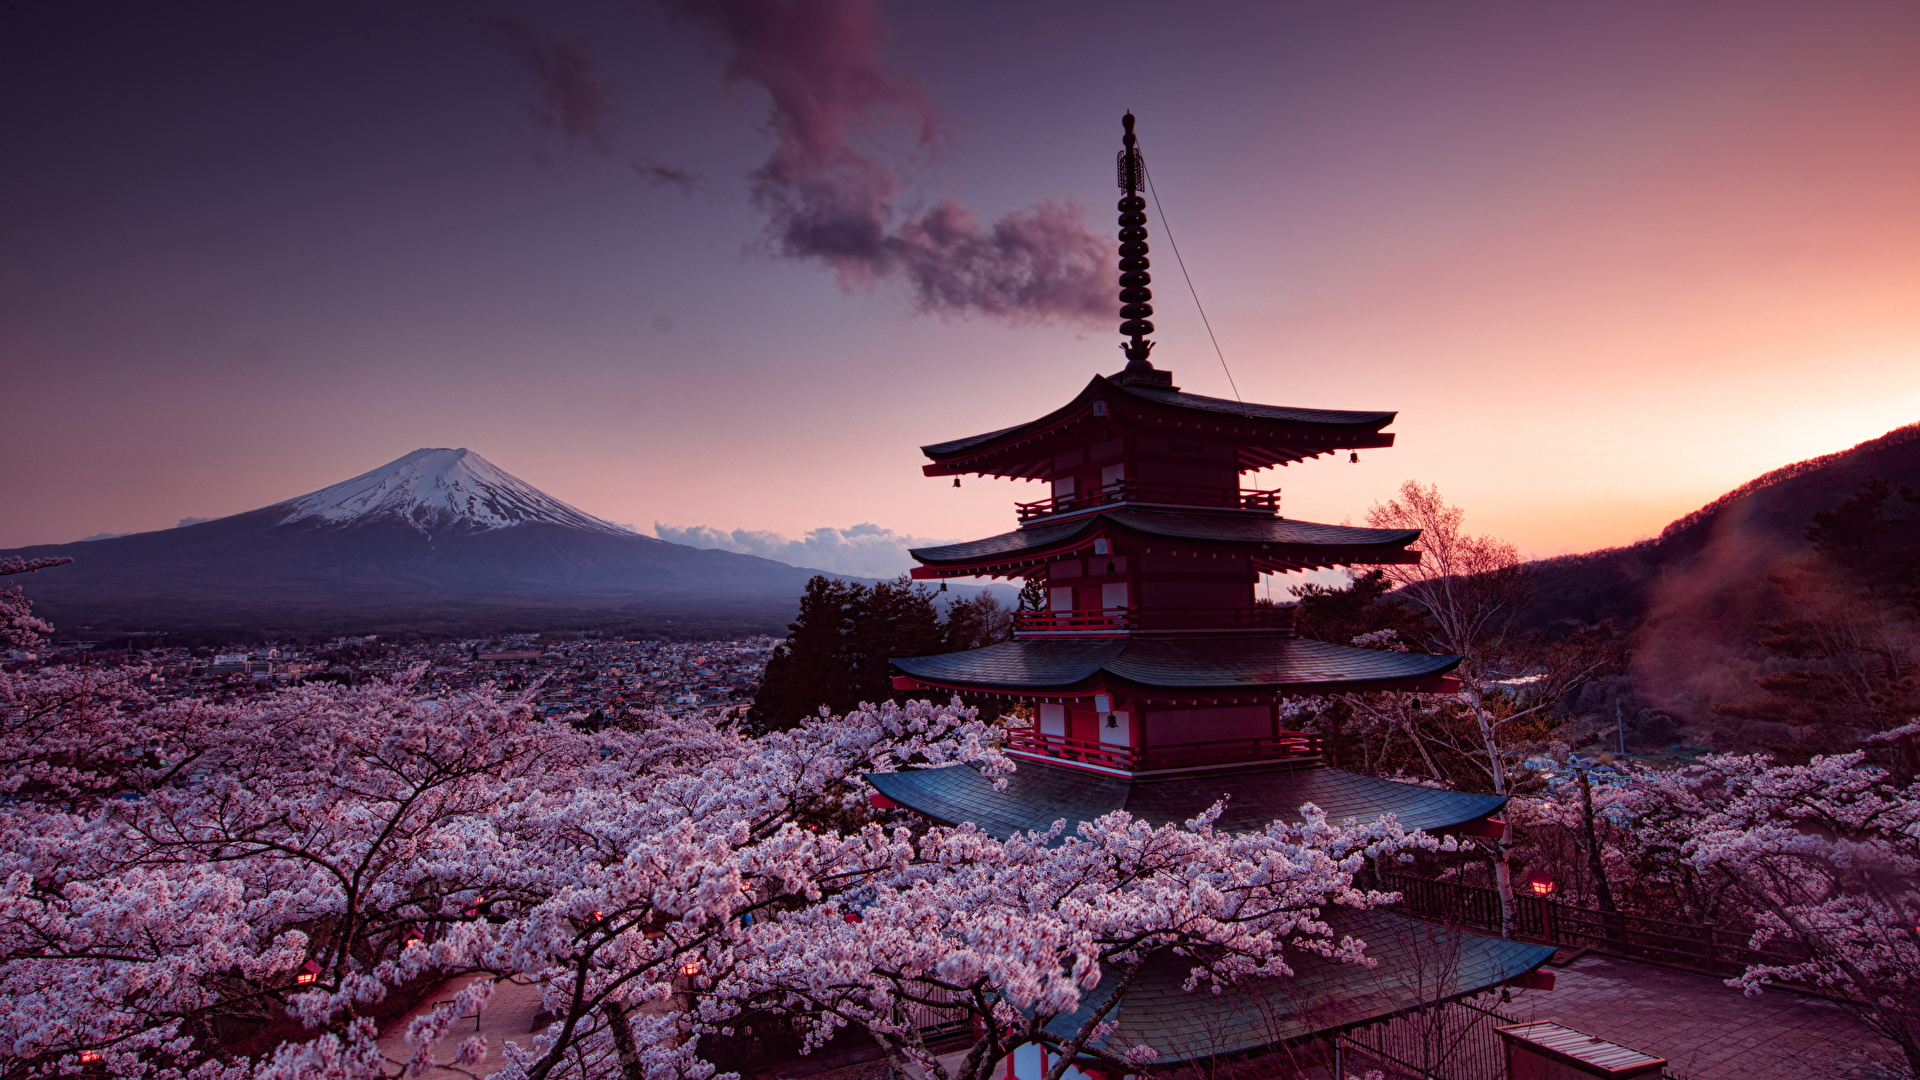 General 1920x1080 cherry blossom pink sky Asian architecture trees clouds Asia mountains